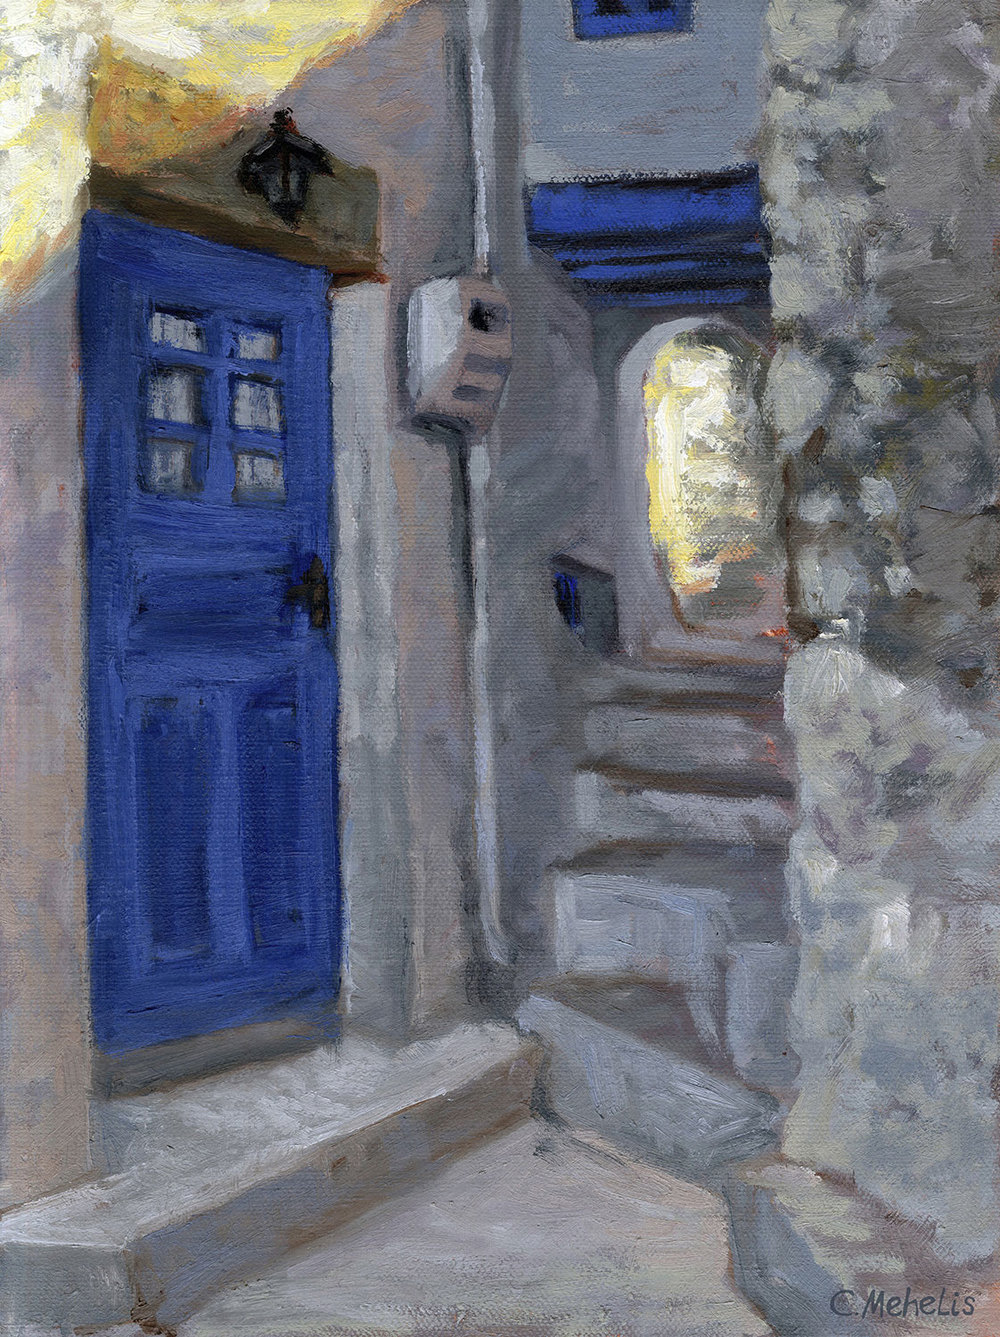 """""""The Blue Door,"""" One of the many mysterious little passages ways winding through the villages of Nisyros Greece. Prints still available of this piece"""